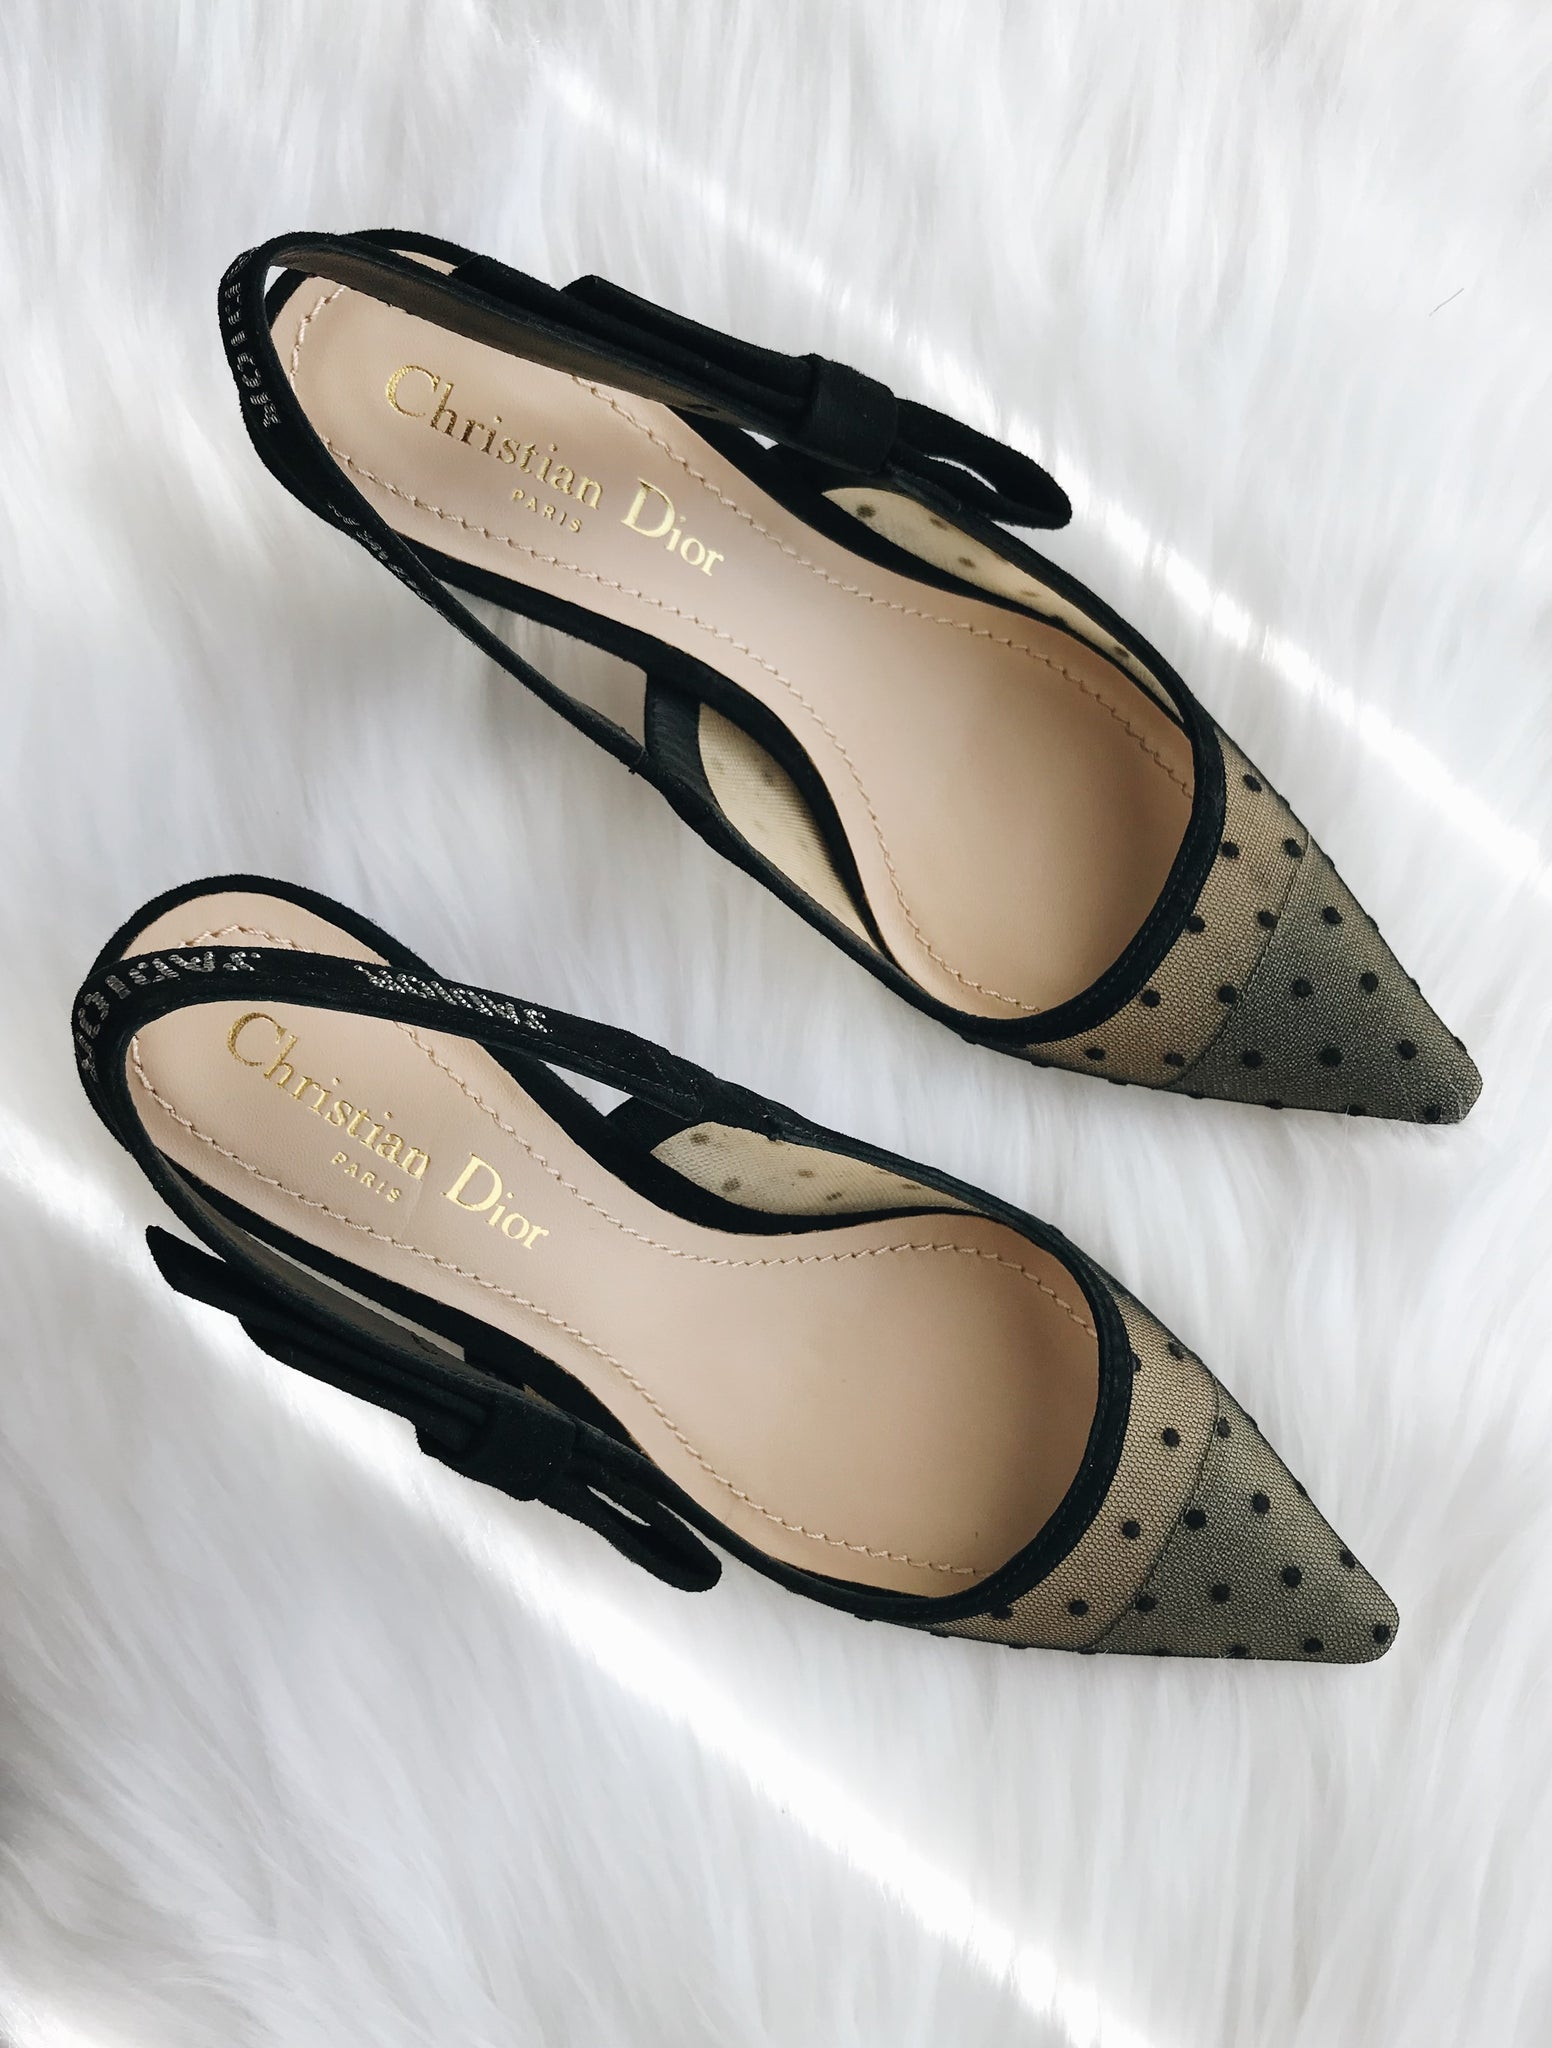 e589e7922cb ... Pre-owned Dior Jadior Sling-back in nude and black dotted swiss    rhinestones ...